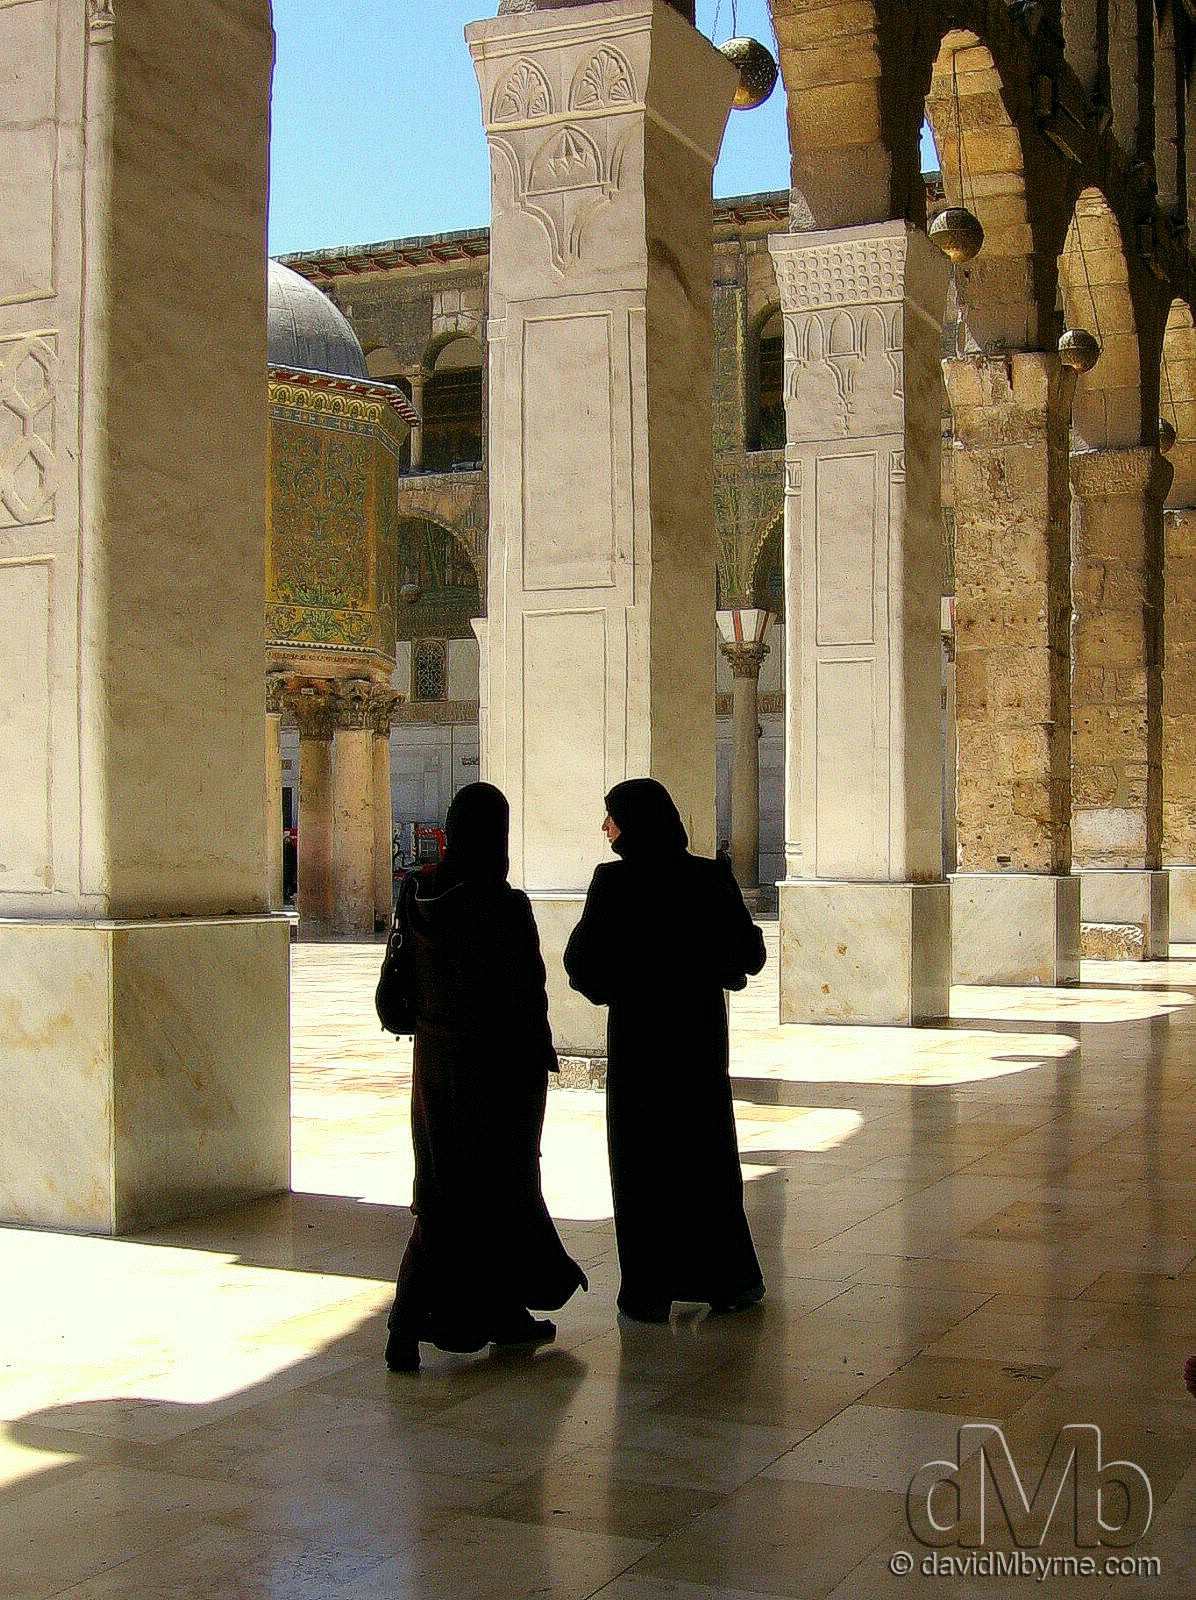 In the courtyard of the Ummayad Mosque in Damascus, Syria. May 5th, 2008.